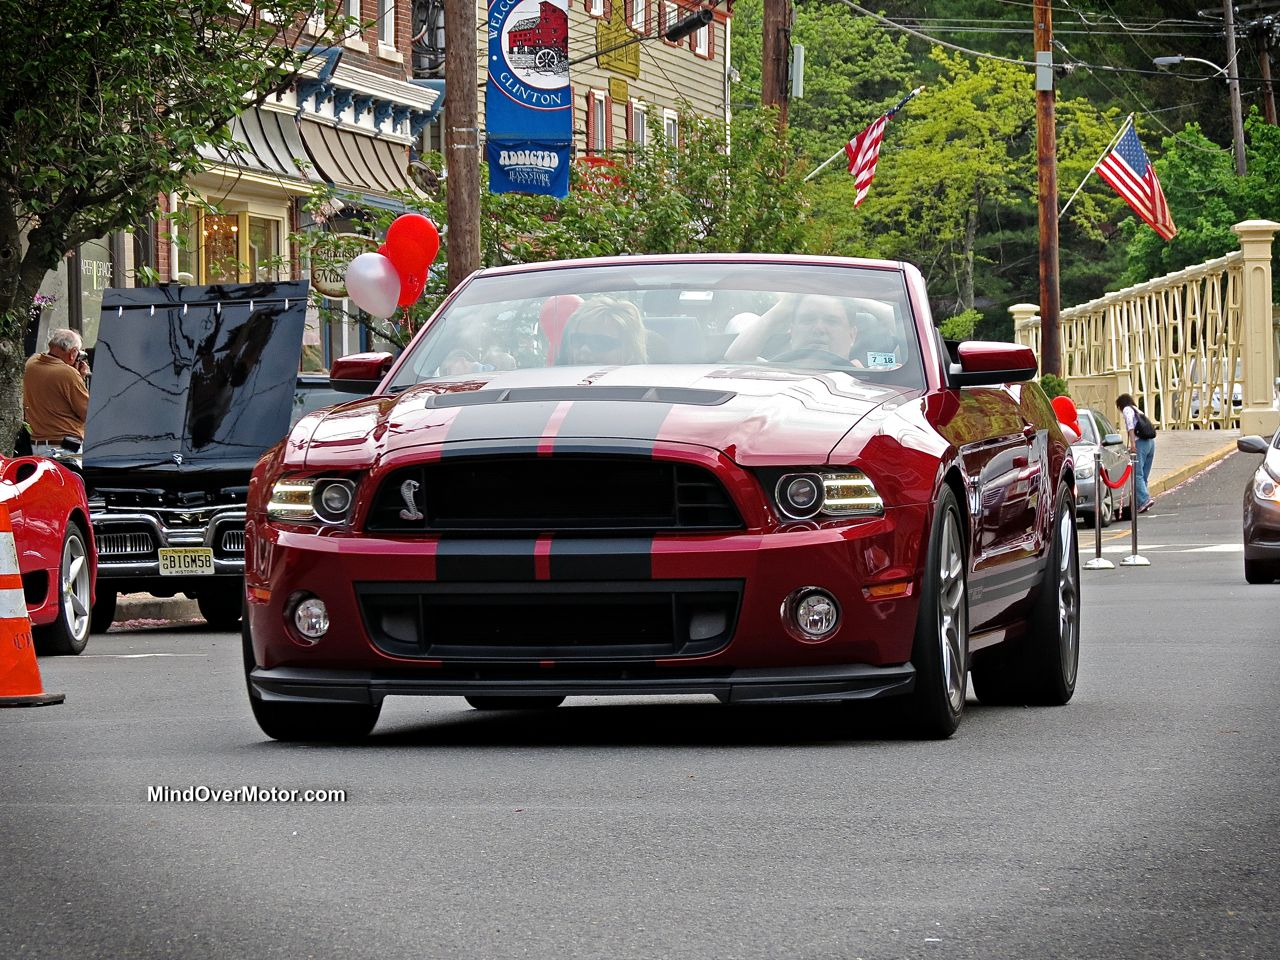 Burgundy Shelby Mustang GT500 Convertible